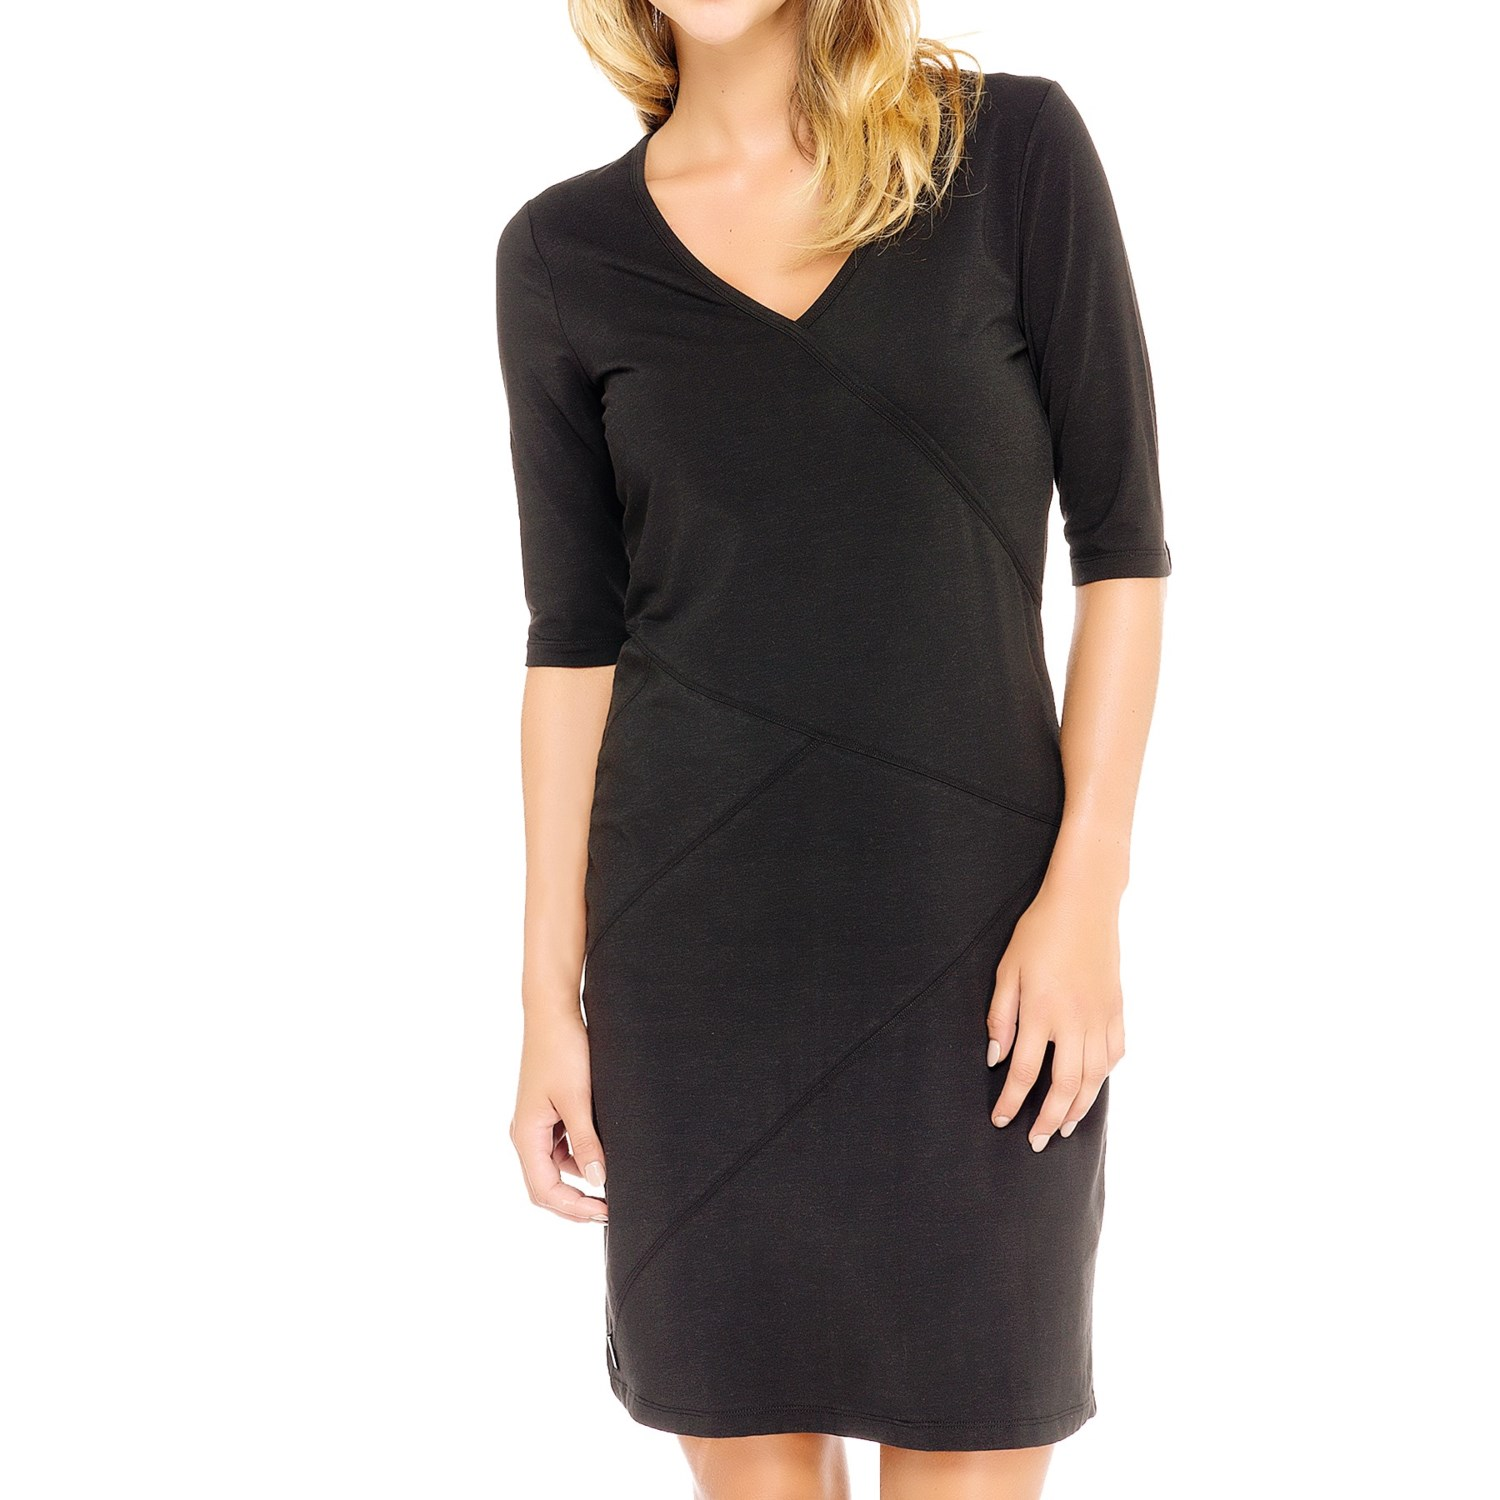 Black Dresses For Women Over 50